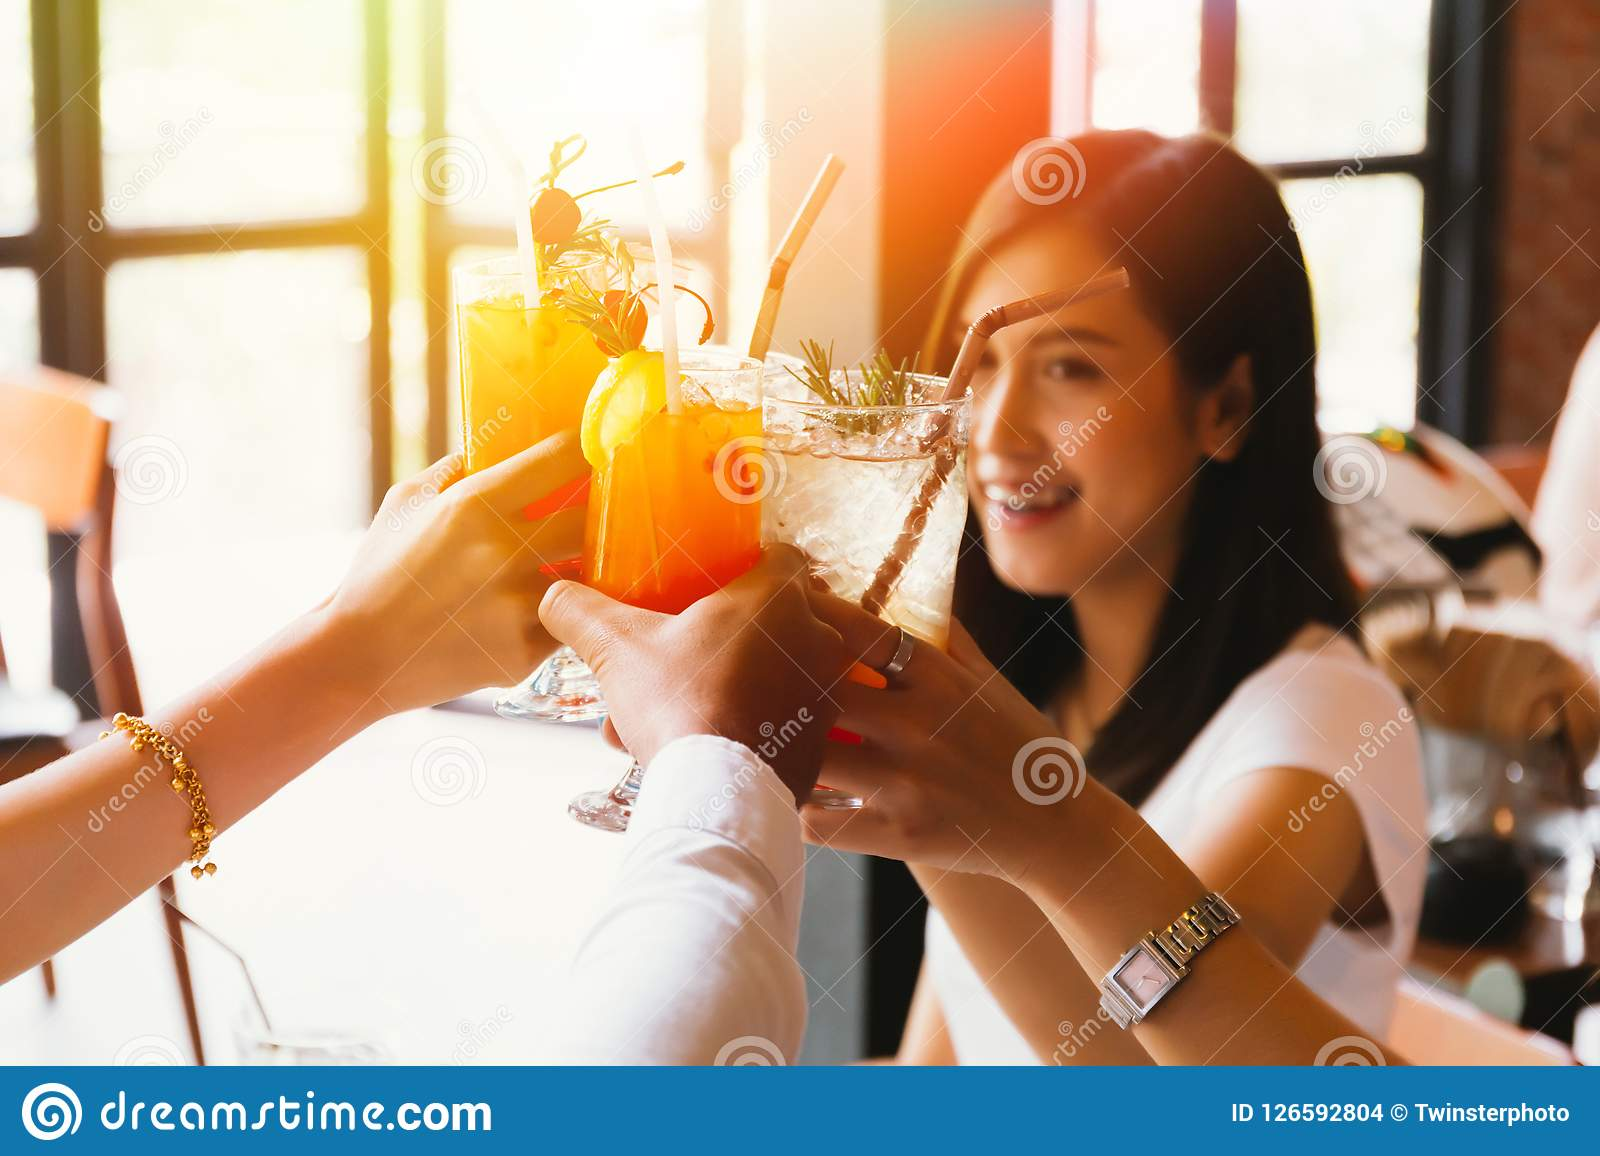 Will refrain toasts cheers asian woman asian consider